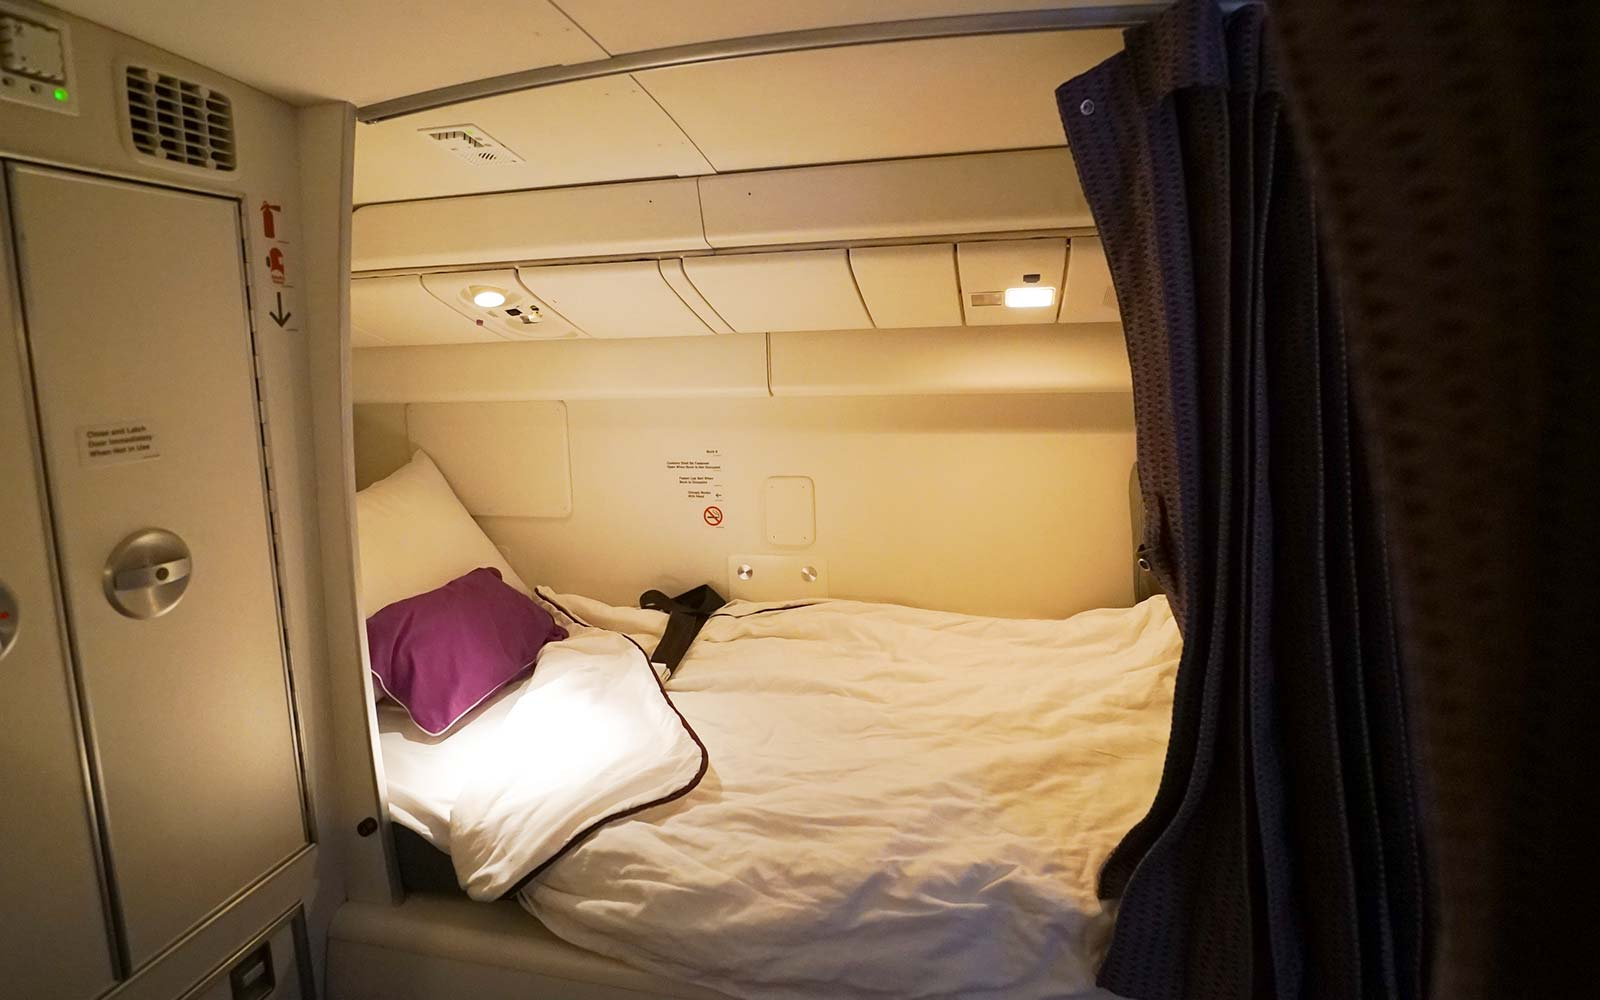 The Secret Plane Compartments Where Pilots Nap on Long Flights